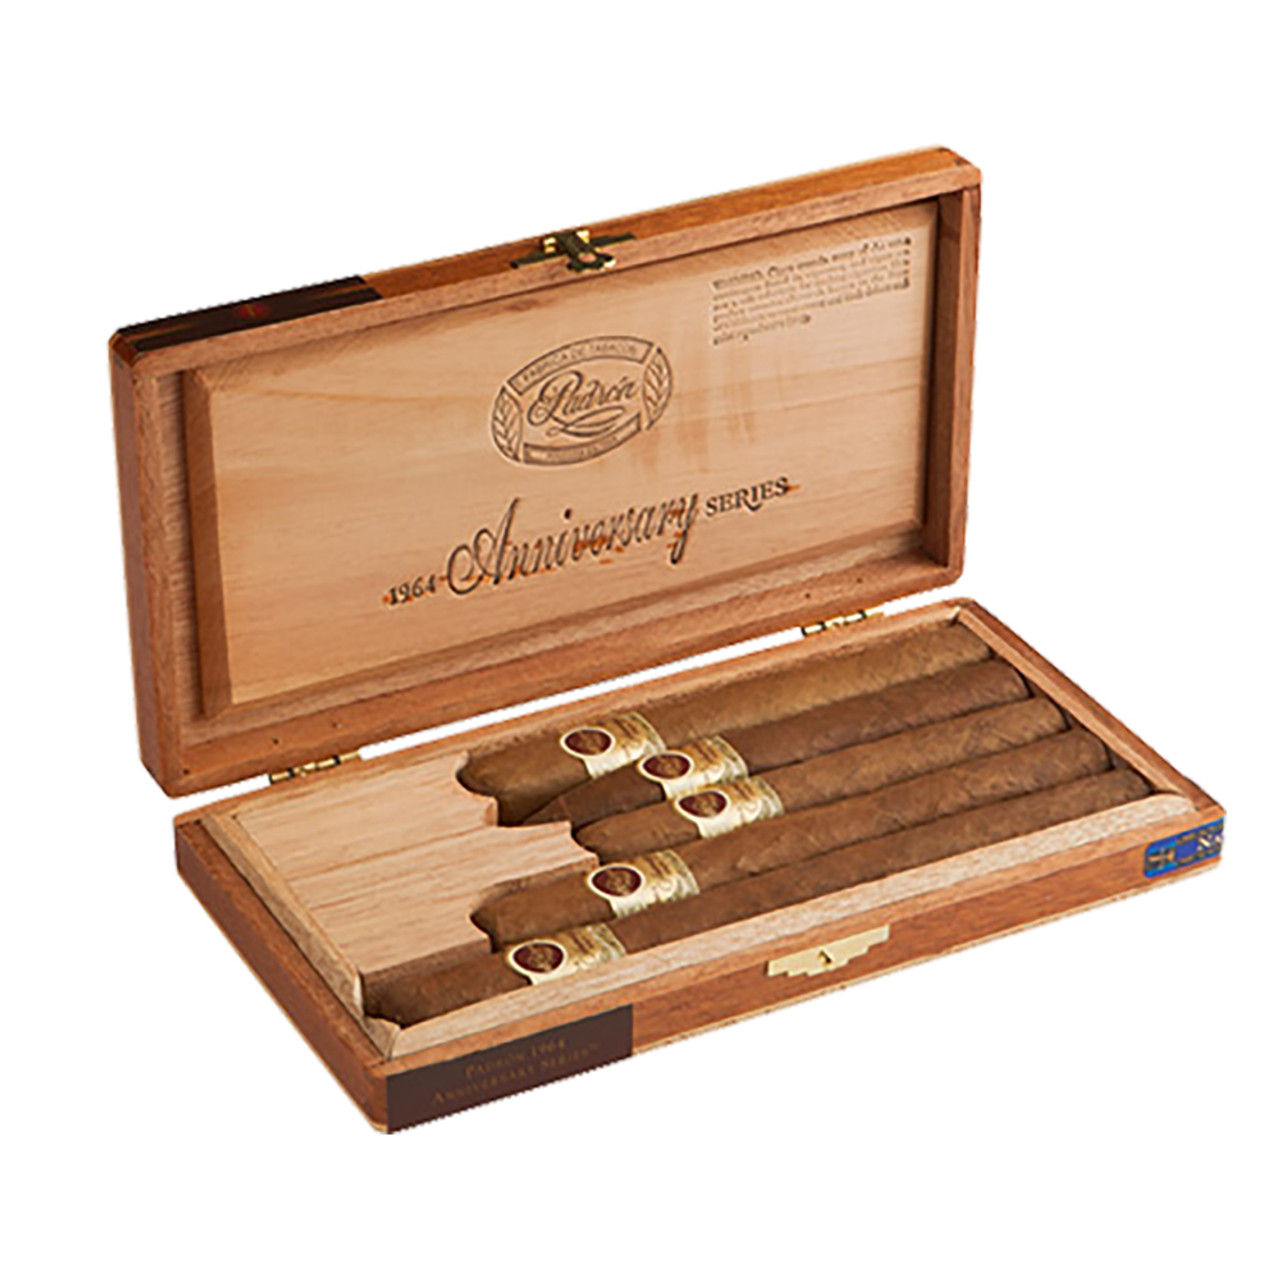 Padron_1964_Anniversary_Gift_Pack_Cigars_-_Natural__94535.1530077963.jpg?c=2&imbypass=on